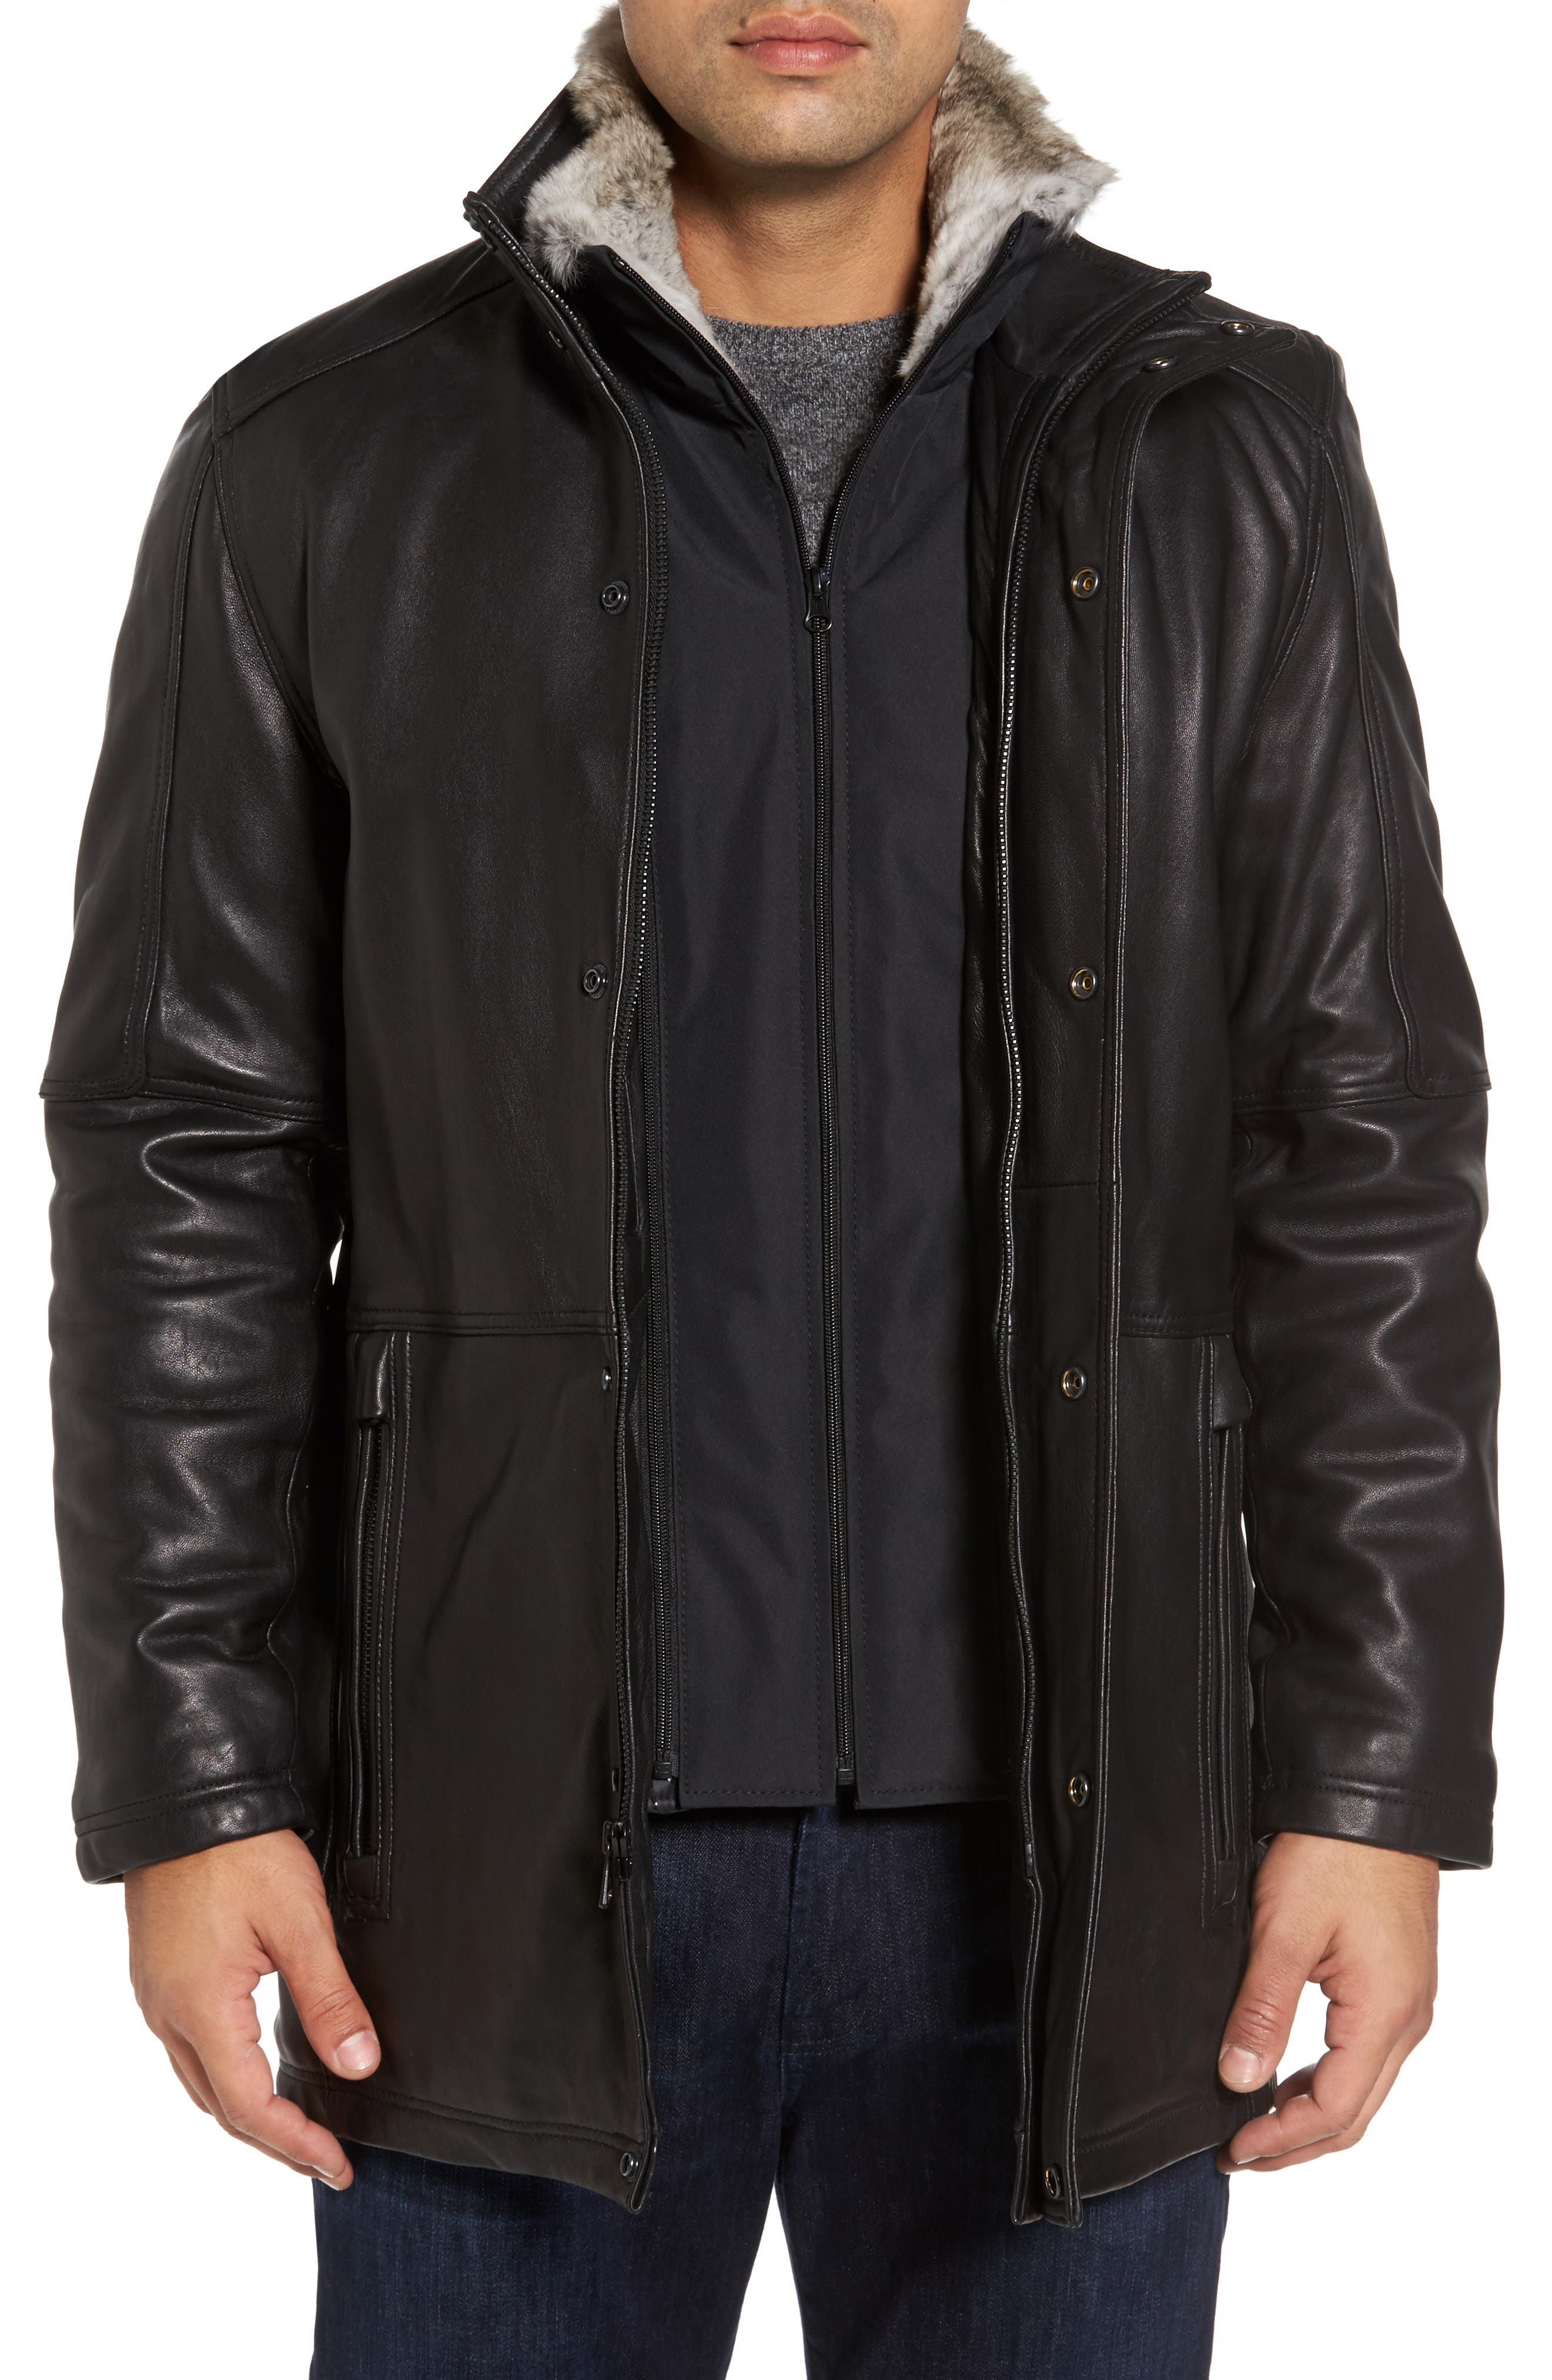 Middlebury Leather Car Coat with Genuine Rabbit Fur Trim,                         Main,                         color, 001